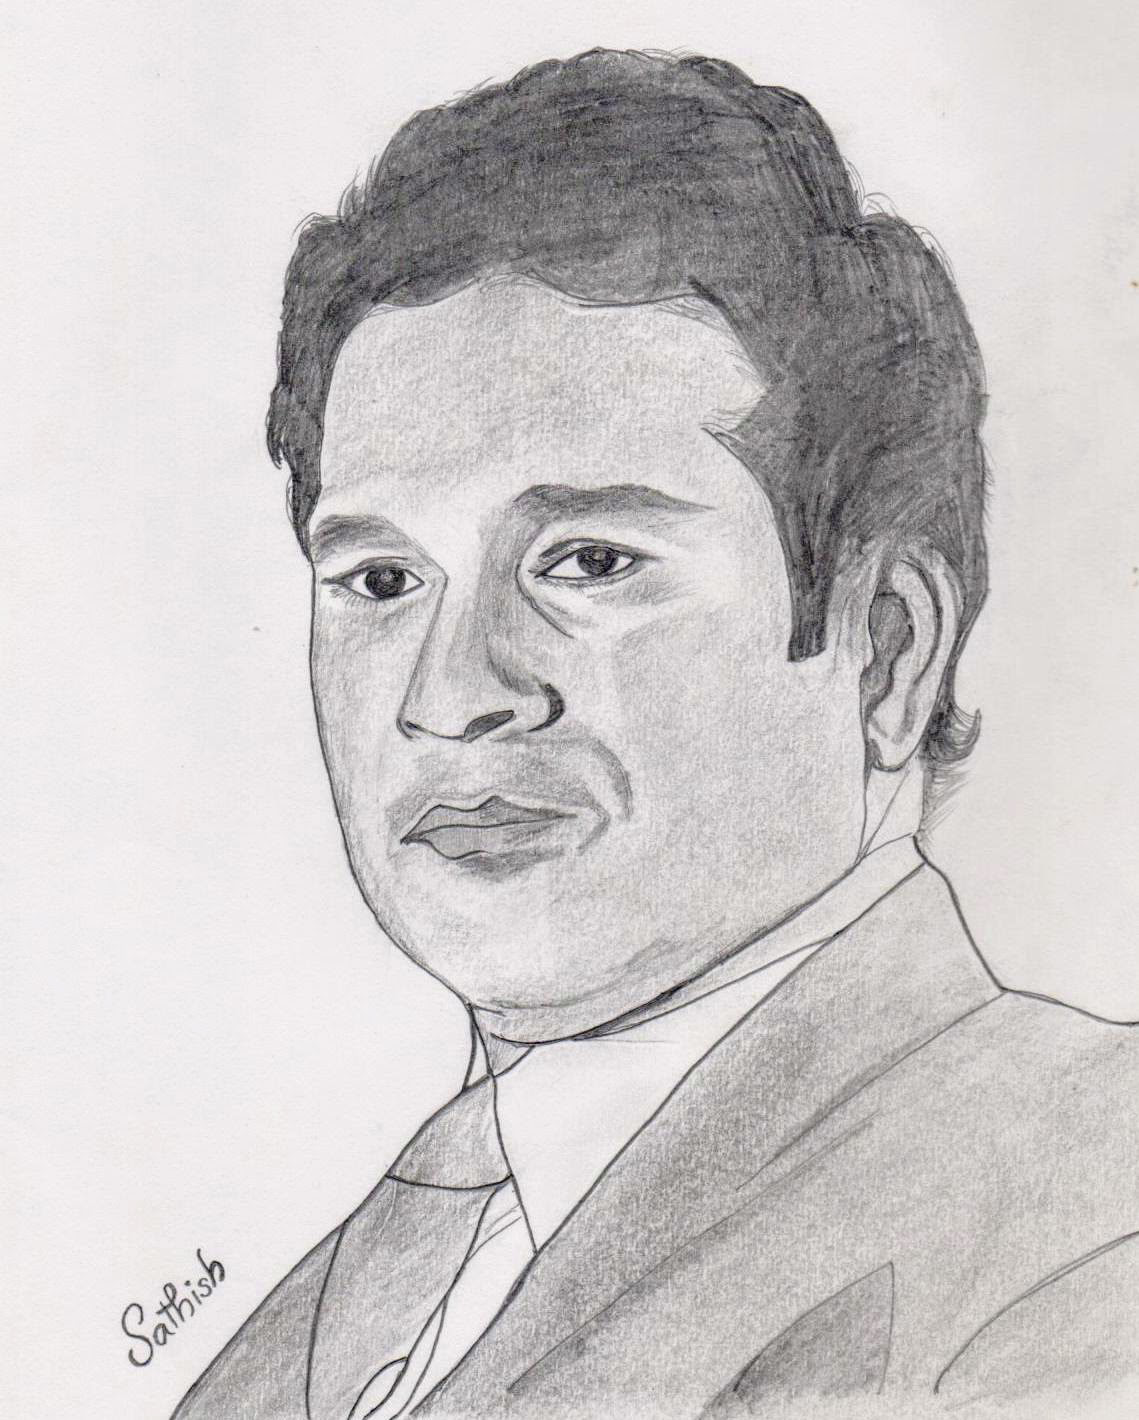 My drawing of sachin tendulkar sachintendulkar sachin art sketch sathishlive tendulkar cricket ball ground bat india world indian mumbai mi